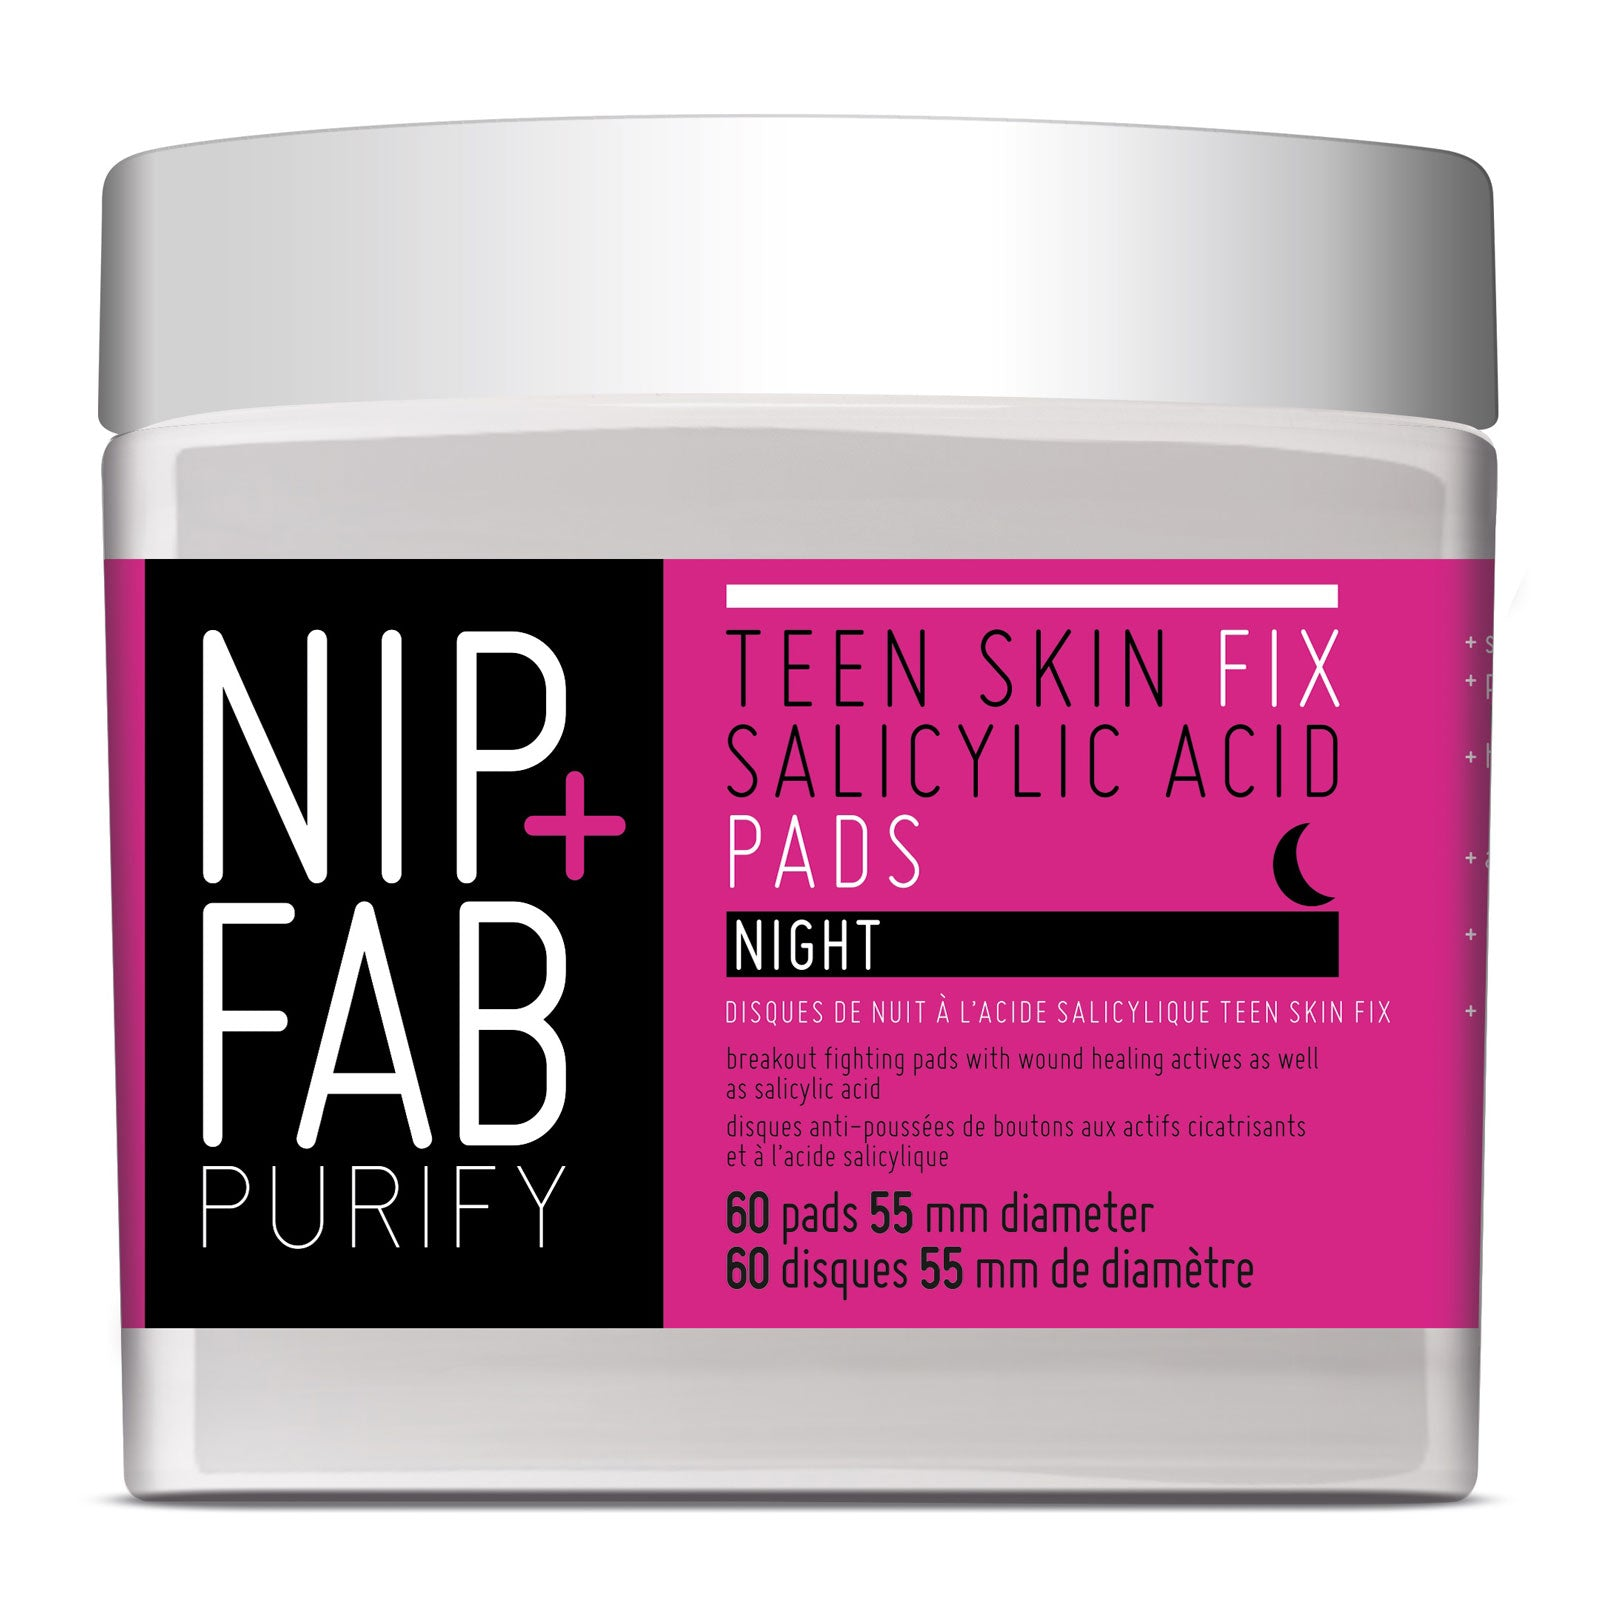 NIP + FAB Teen Skin Fix Salicylic Acid Night Pads x 60 Pads